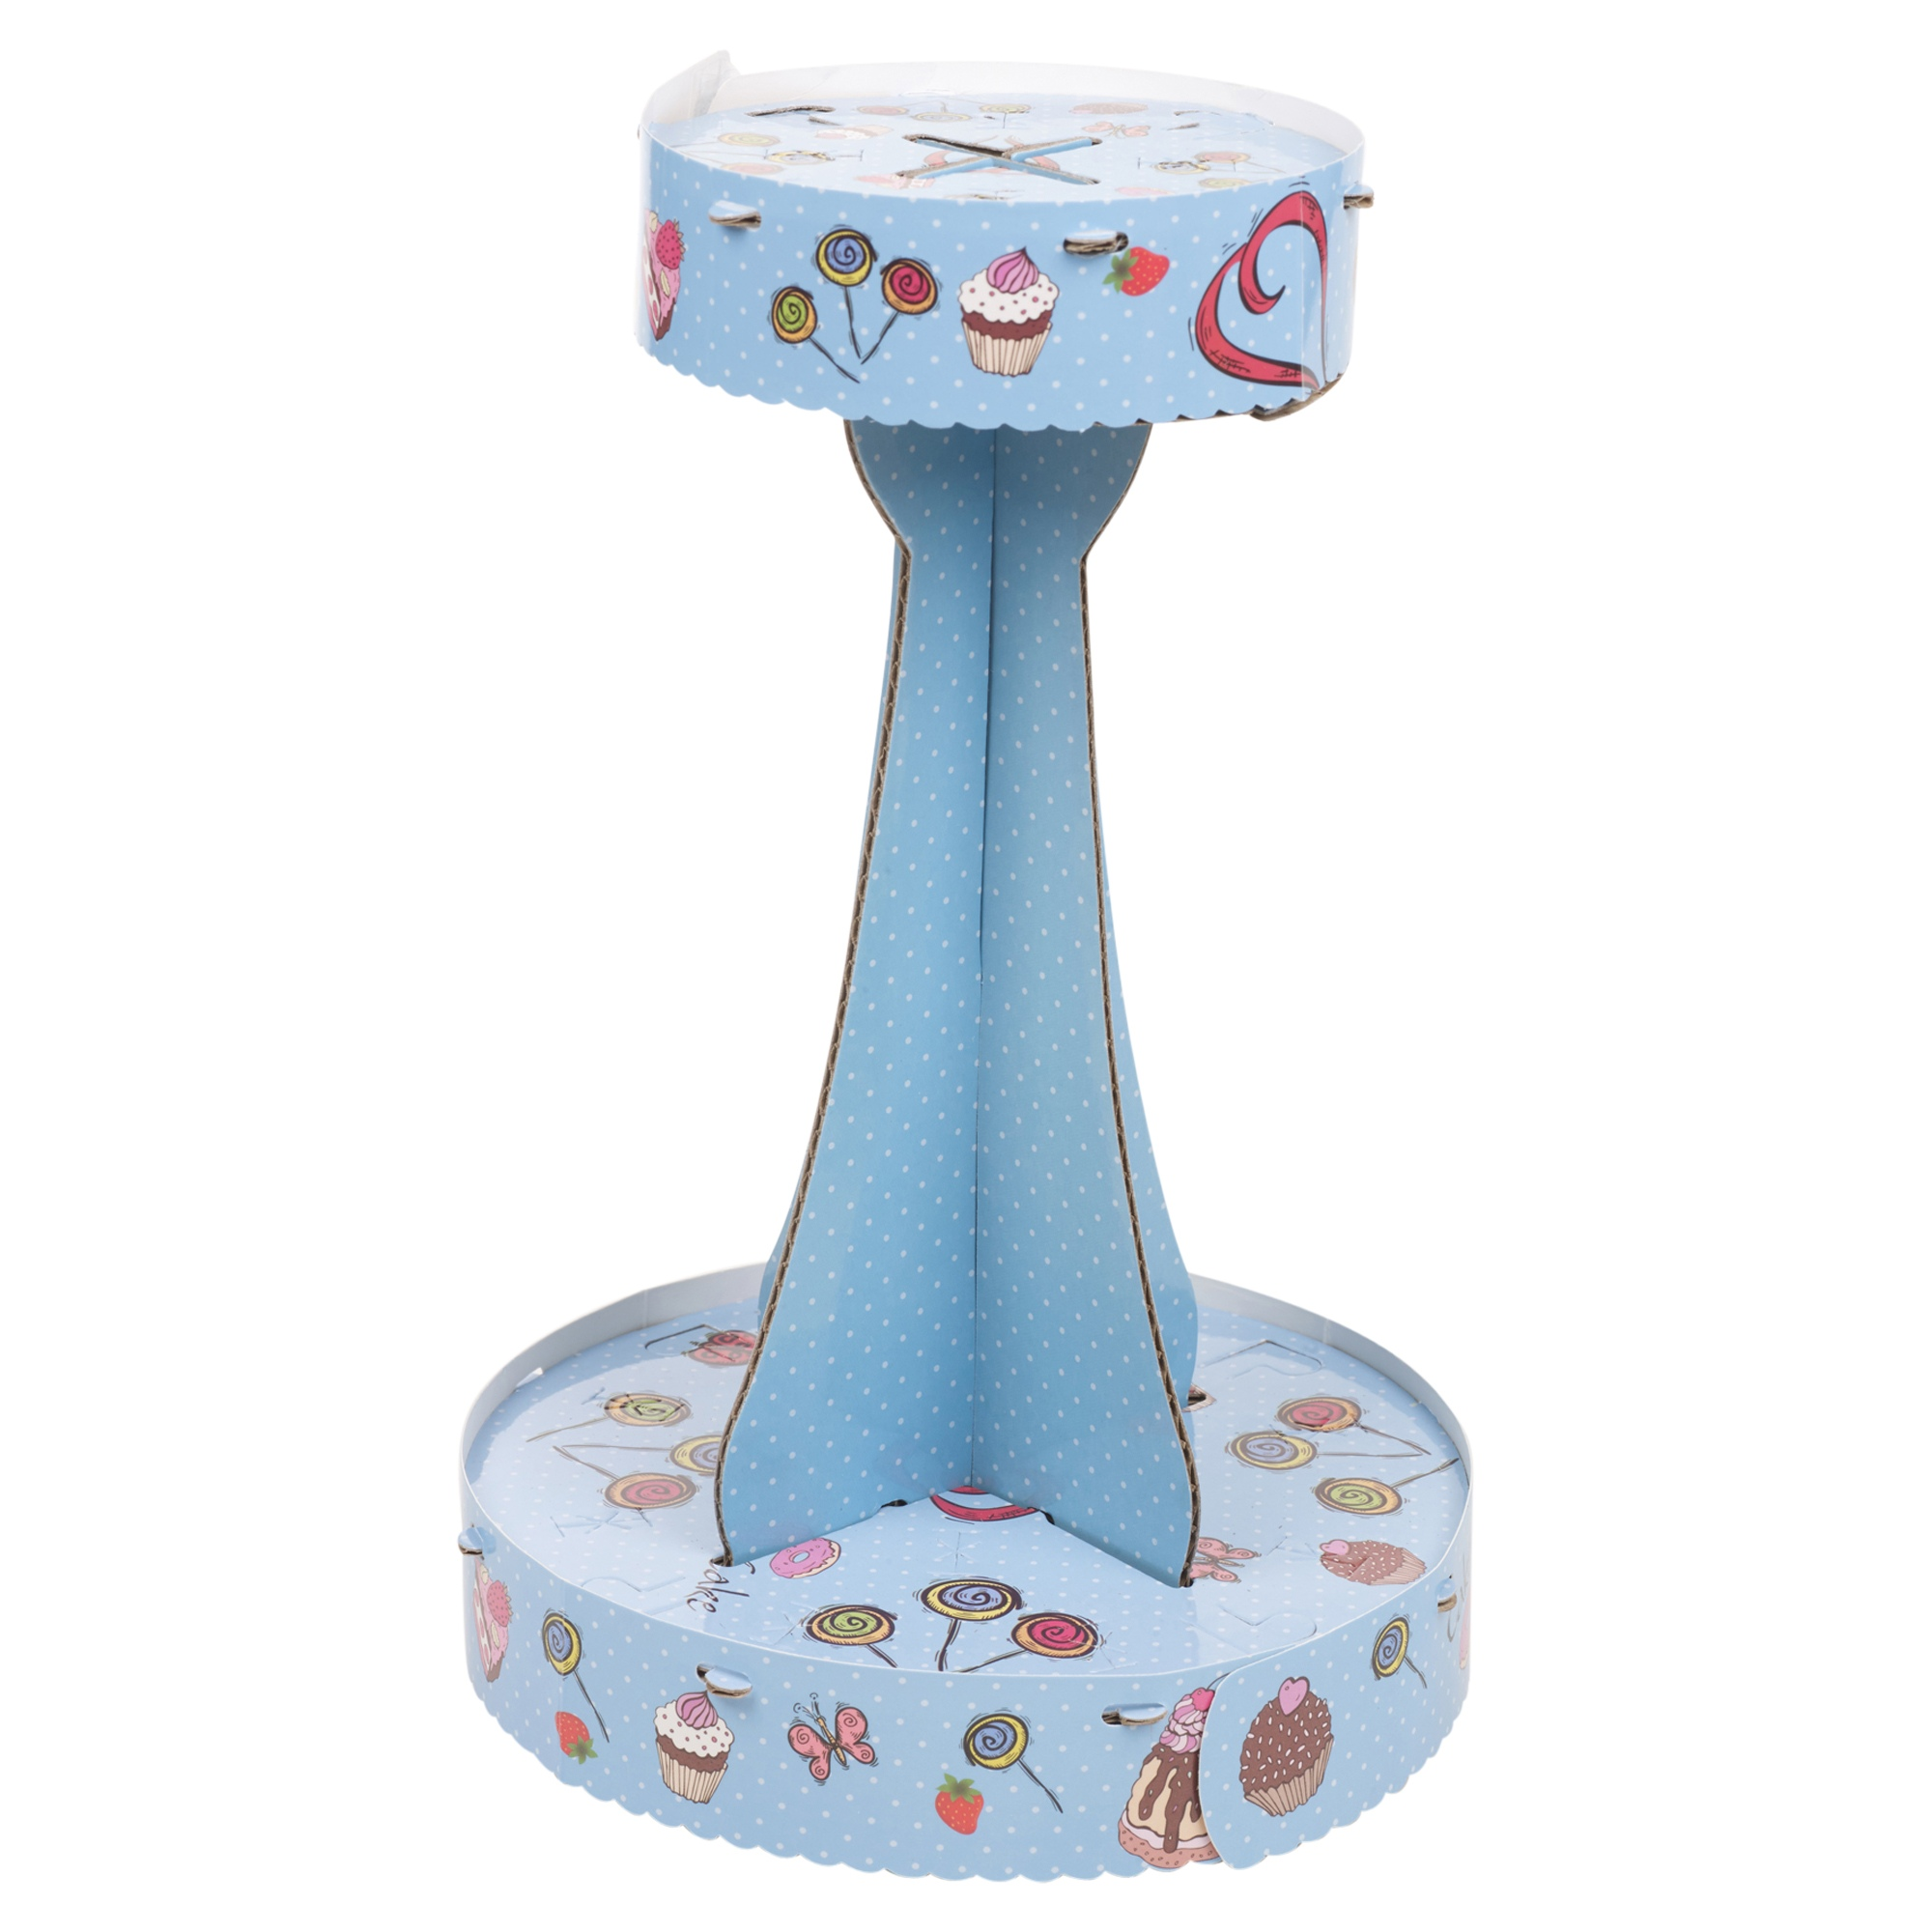 Decor Cake Holder : 2 Tier Cake Pop Stand Decoration Lollipop Decorating ...